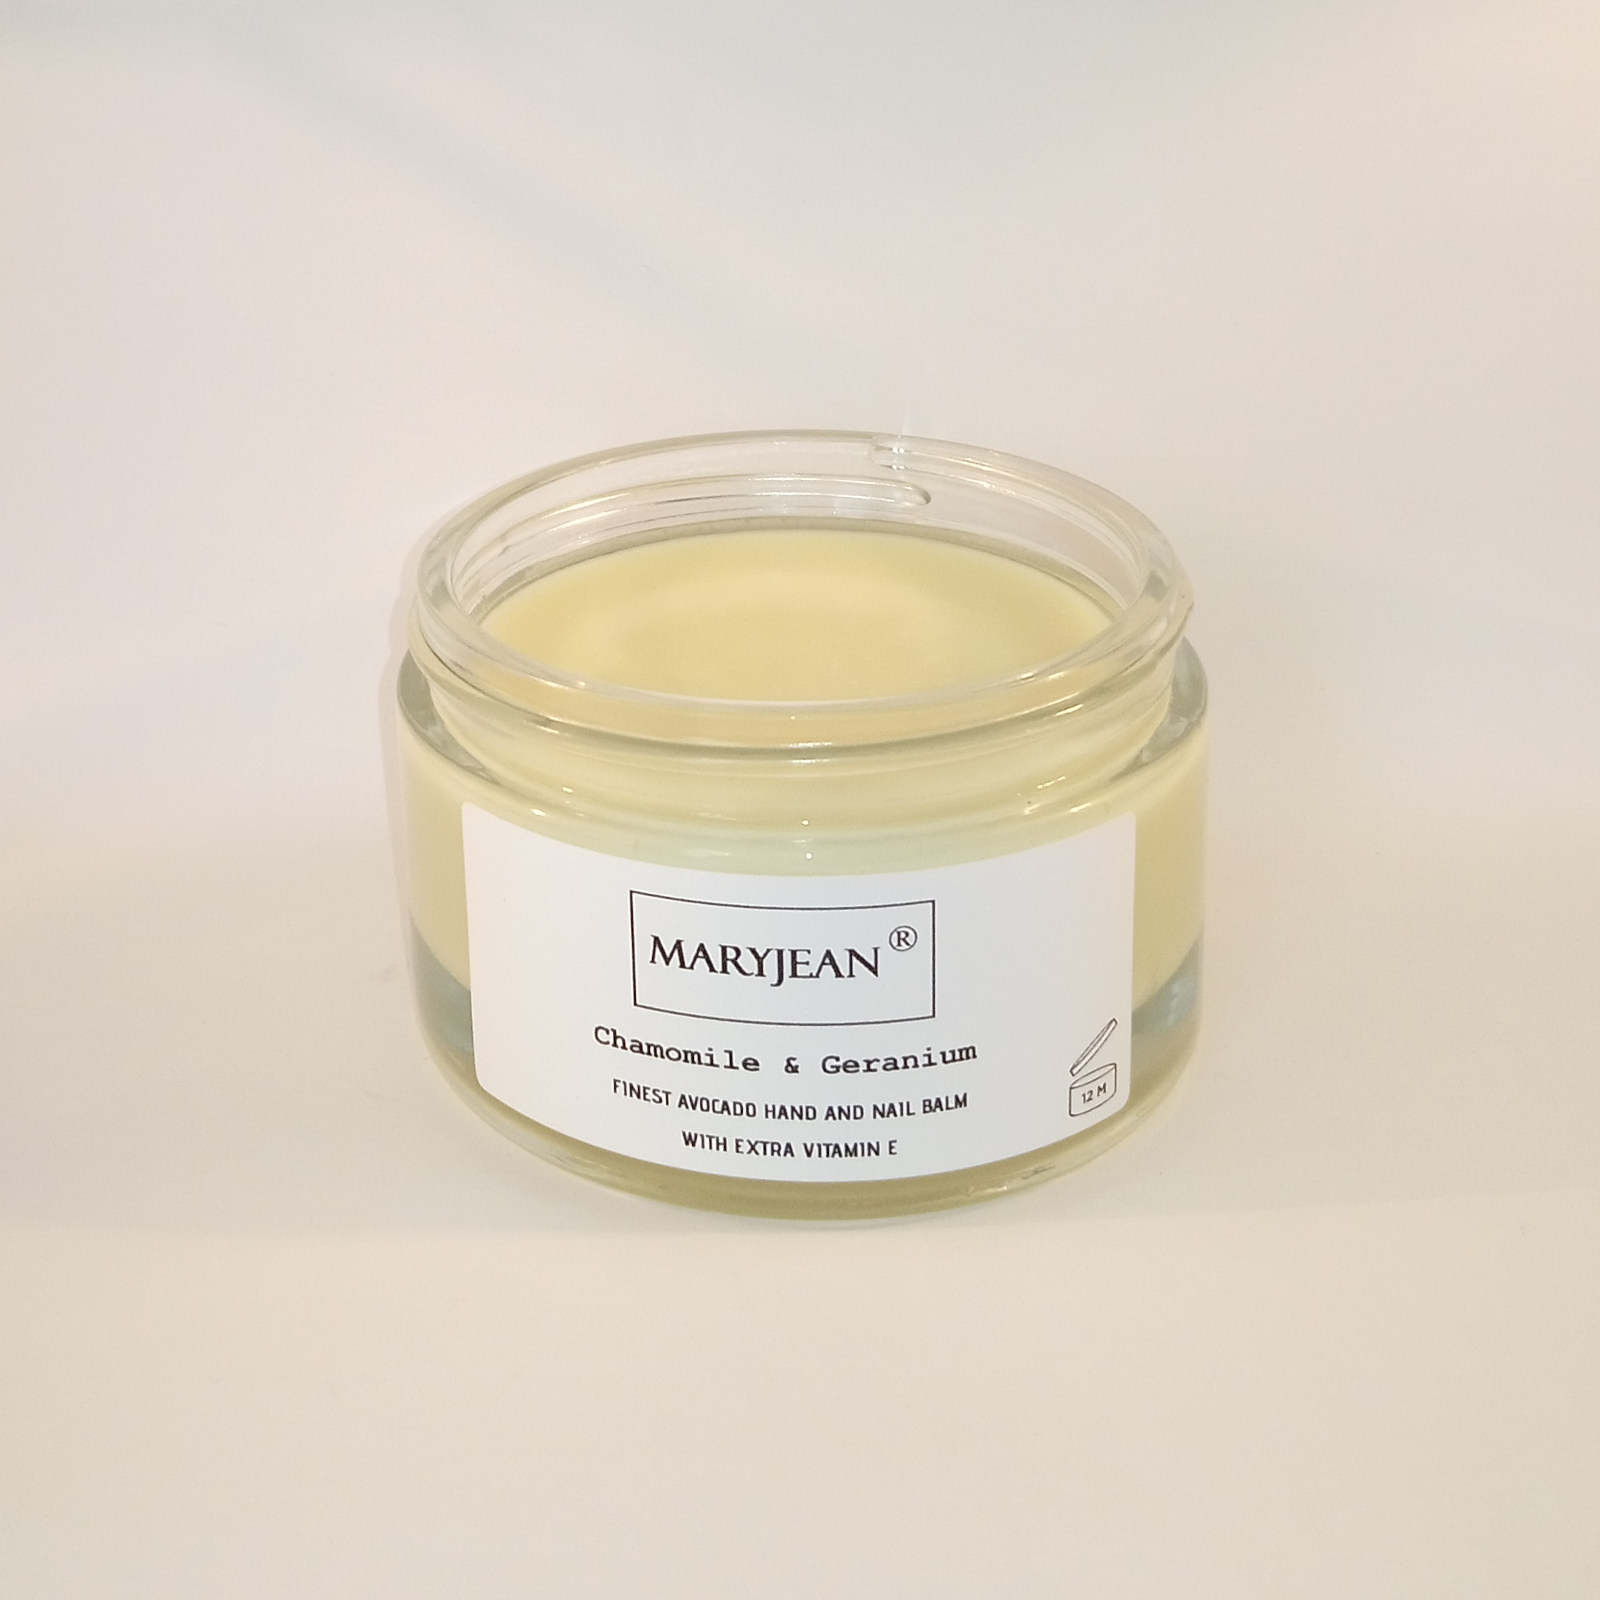 Avocado Hand and Nail Chamomile Geranium Balm with extra Vitamin E A natural organic balm designed to ease stress on hands and nails resulting in improved appearance and less aged skin fewer wrinkles and dull nails